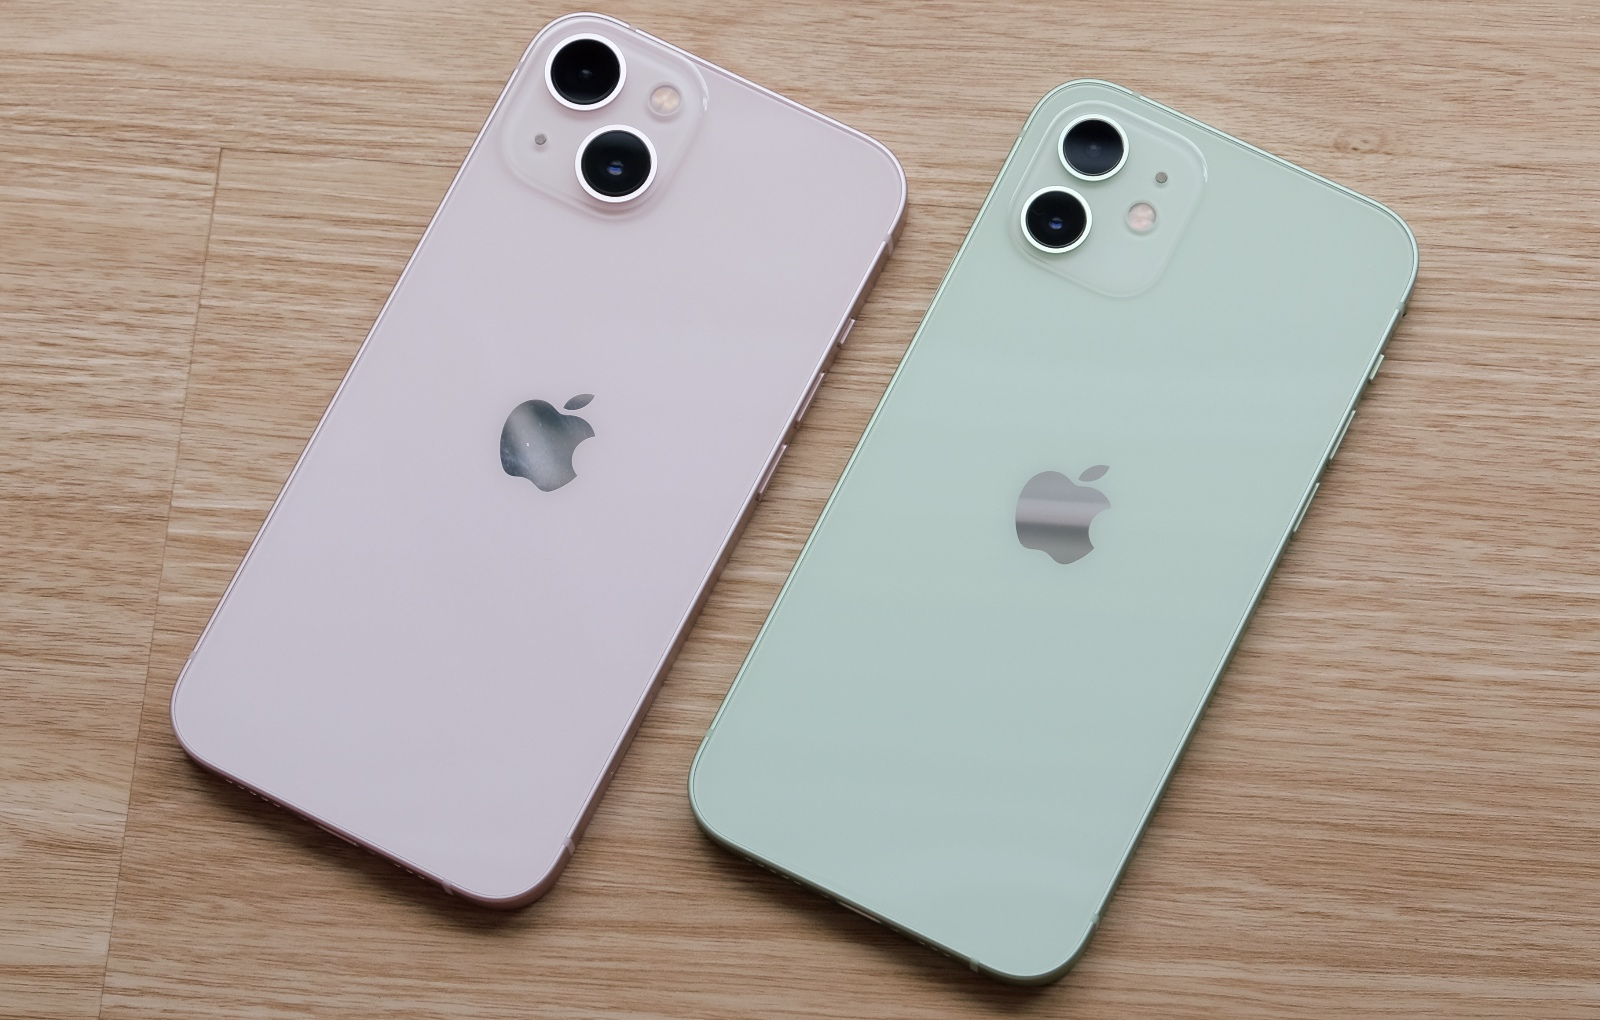 Can you tell which is the iPhone 13 and which is the iPhone 12?